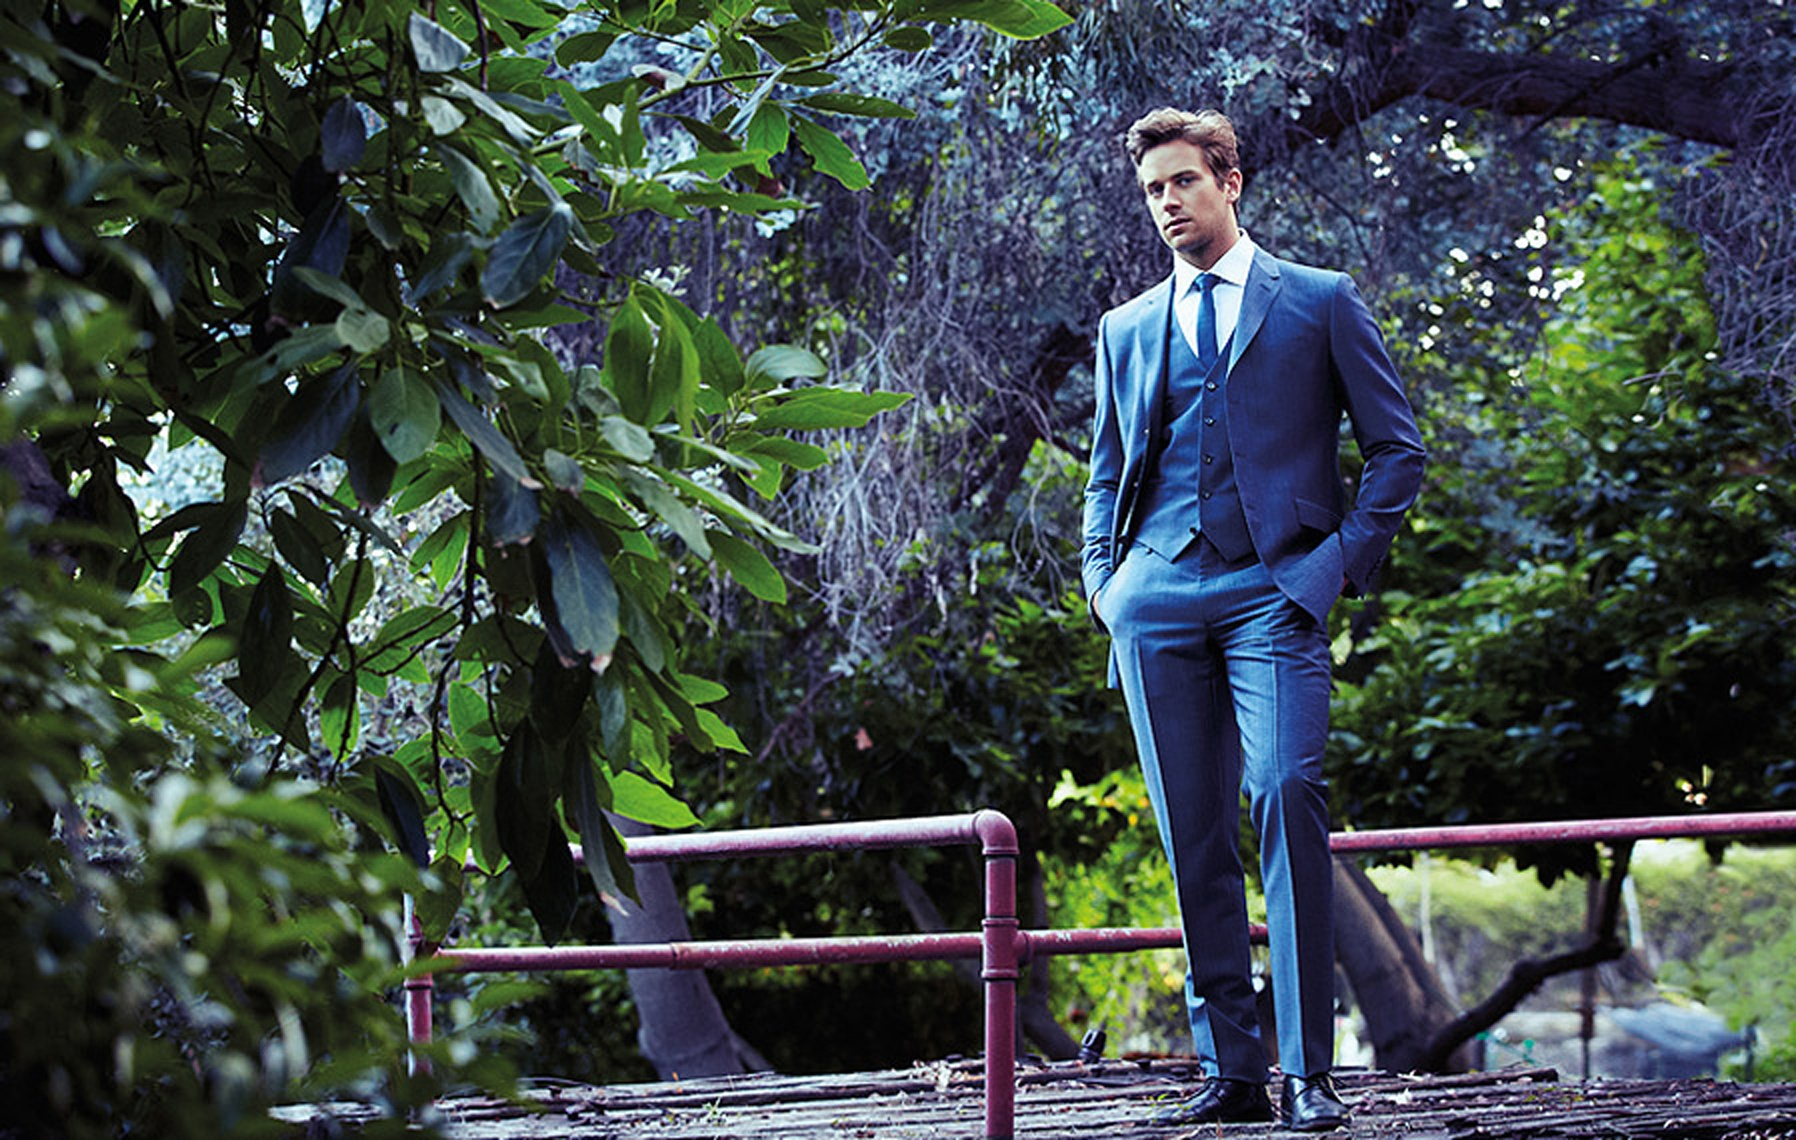 Armie Hammer Wallpaper For Laptop